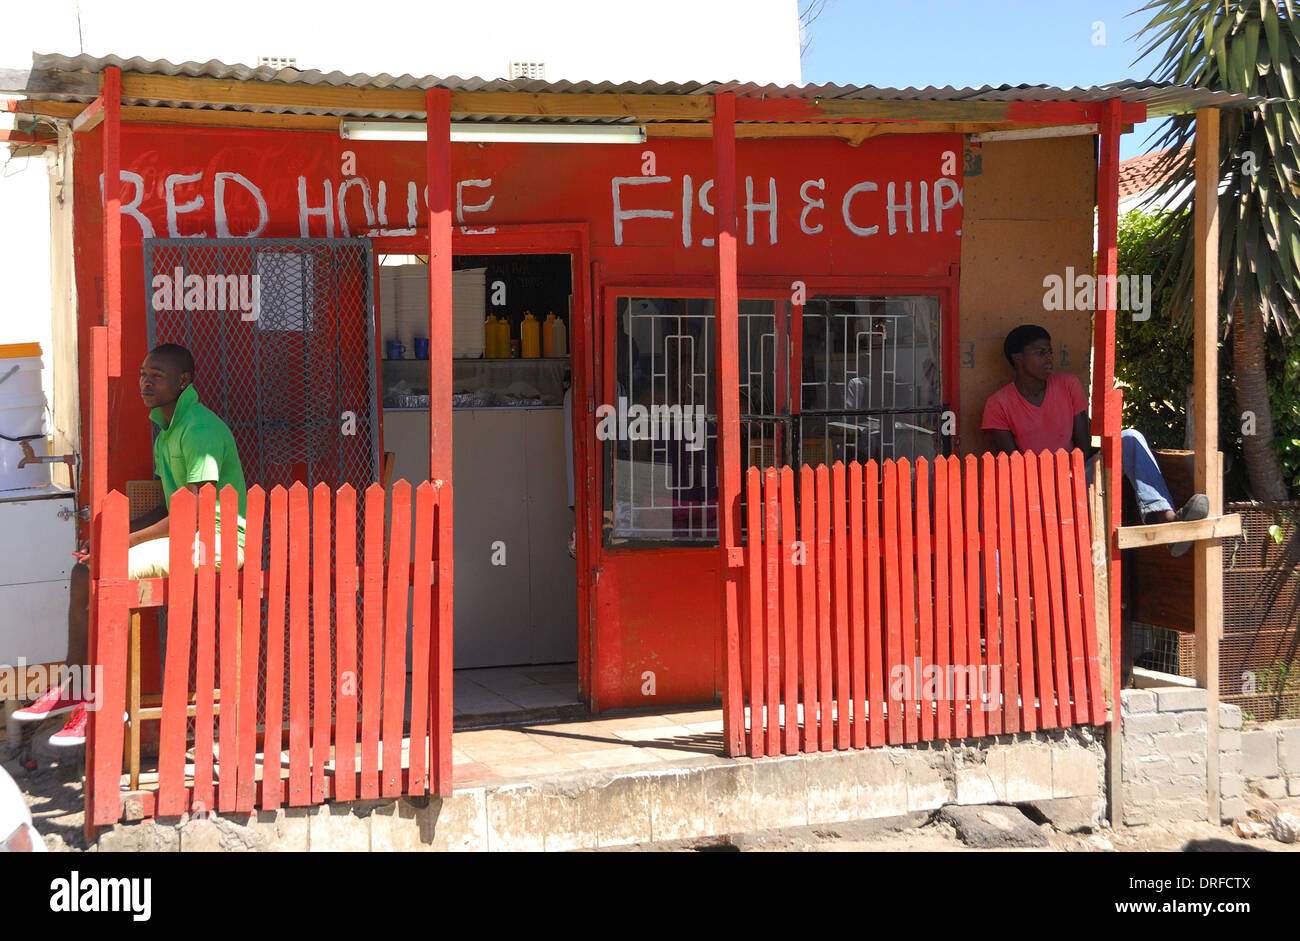 Imizamo Yethu township Fish and Chip shop - Stock Image